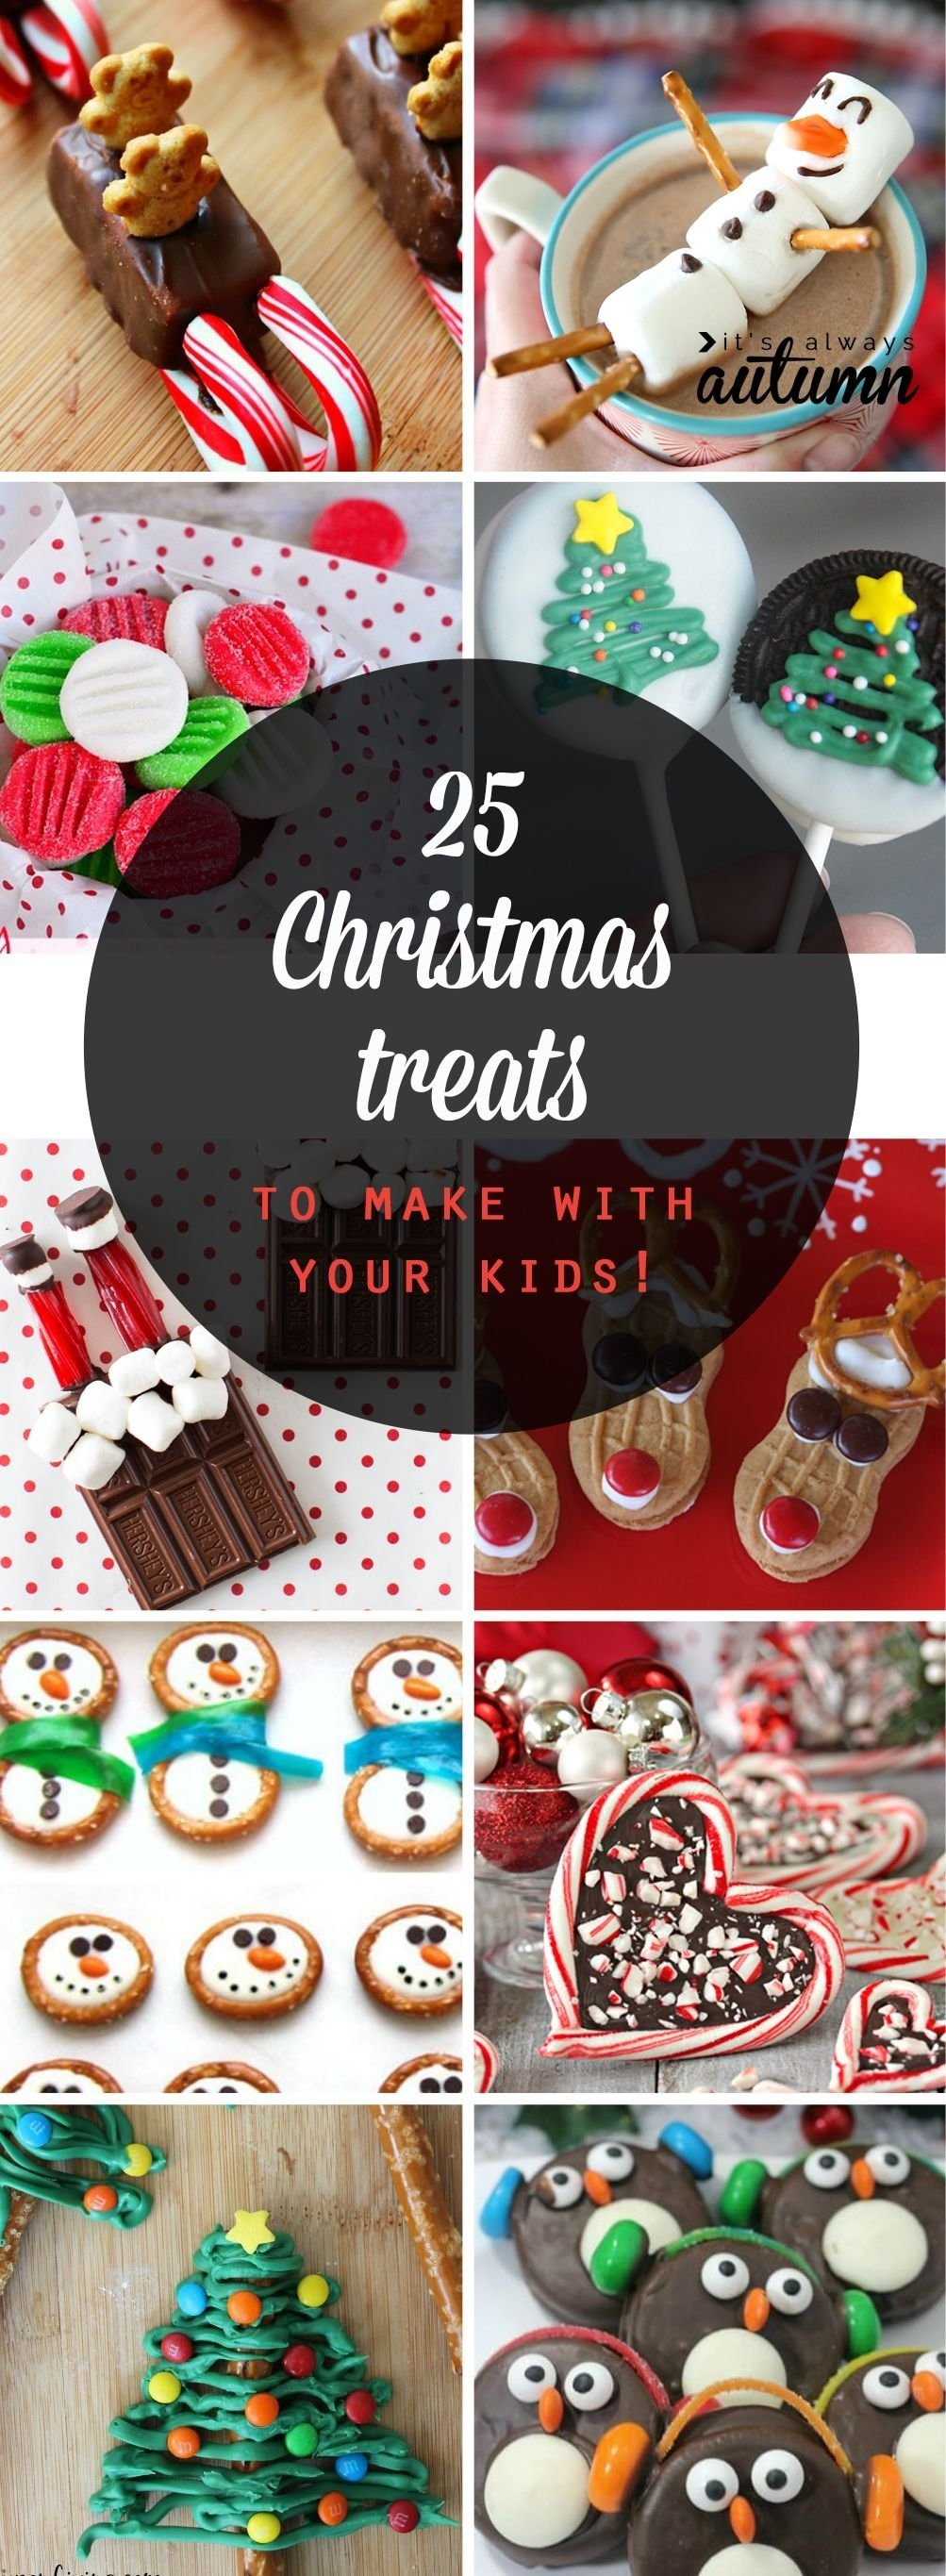 10 Unique Christmas Dessert Ideas For Kids 25 adorable christmas treats to make with your kids holiday candy 2020